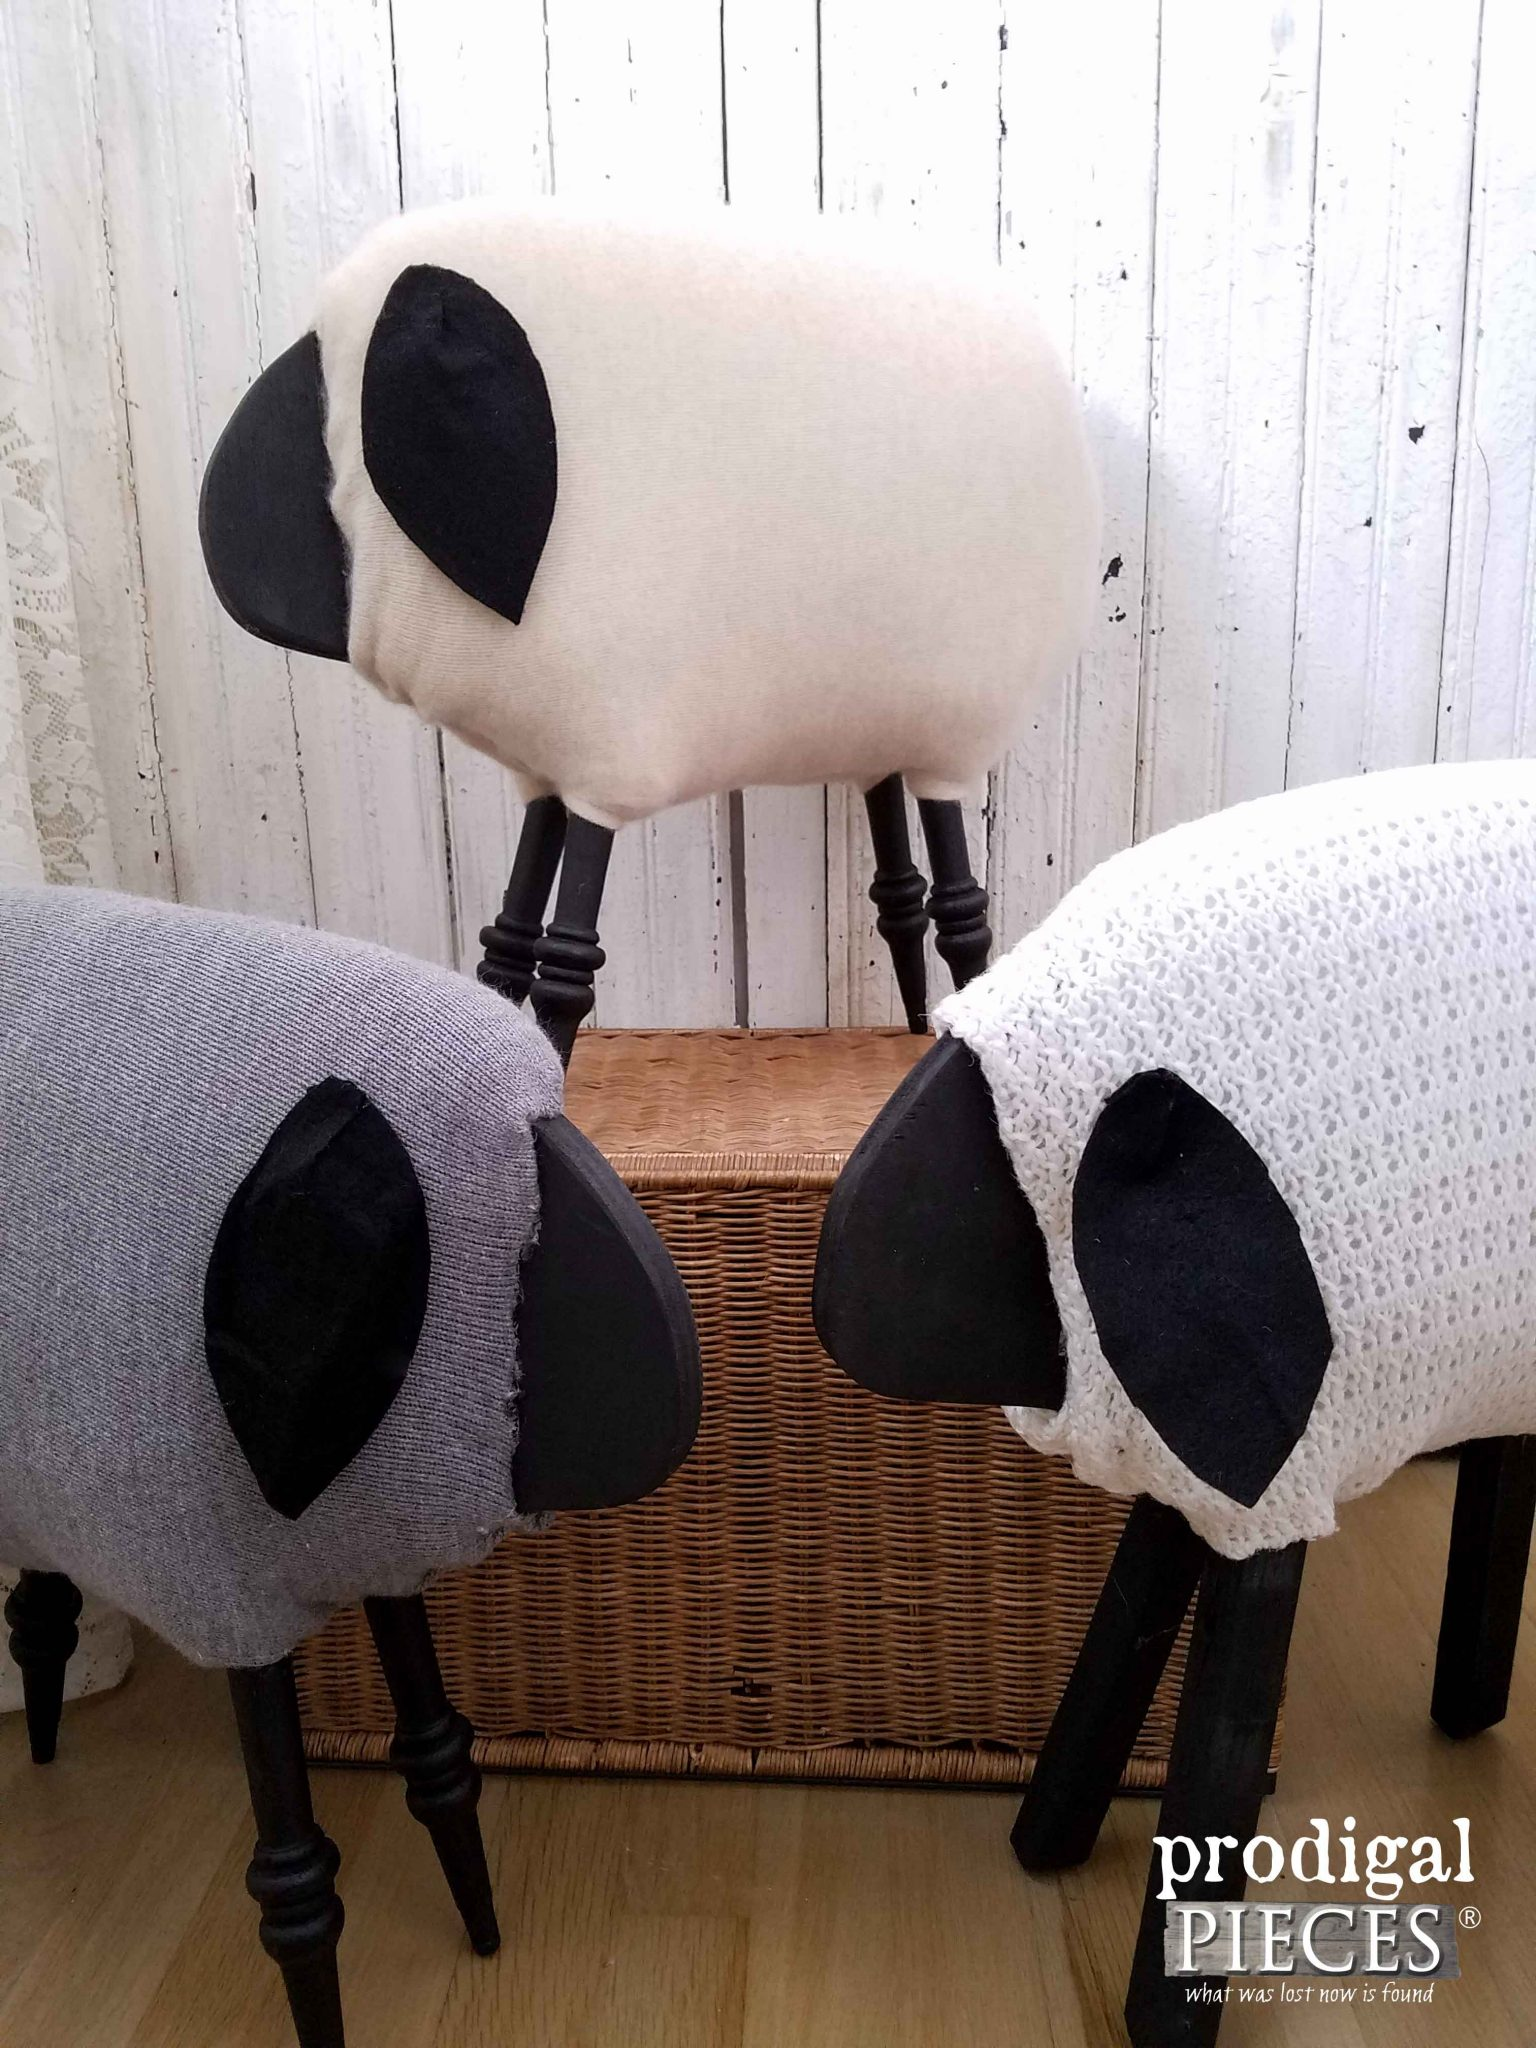 Collection of Repurposed Woolly Sheep by Prodigal Pieces | prodigalpieces.com